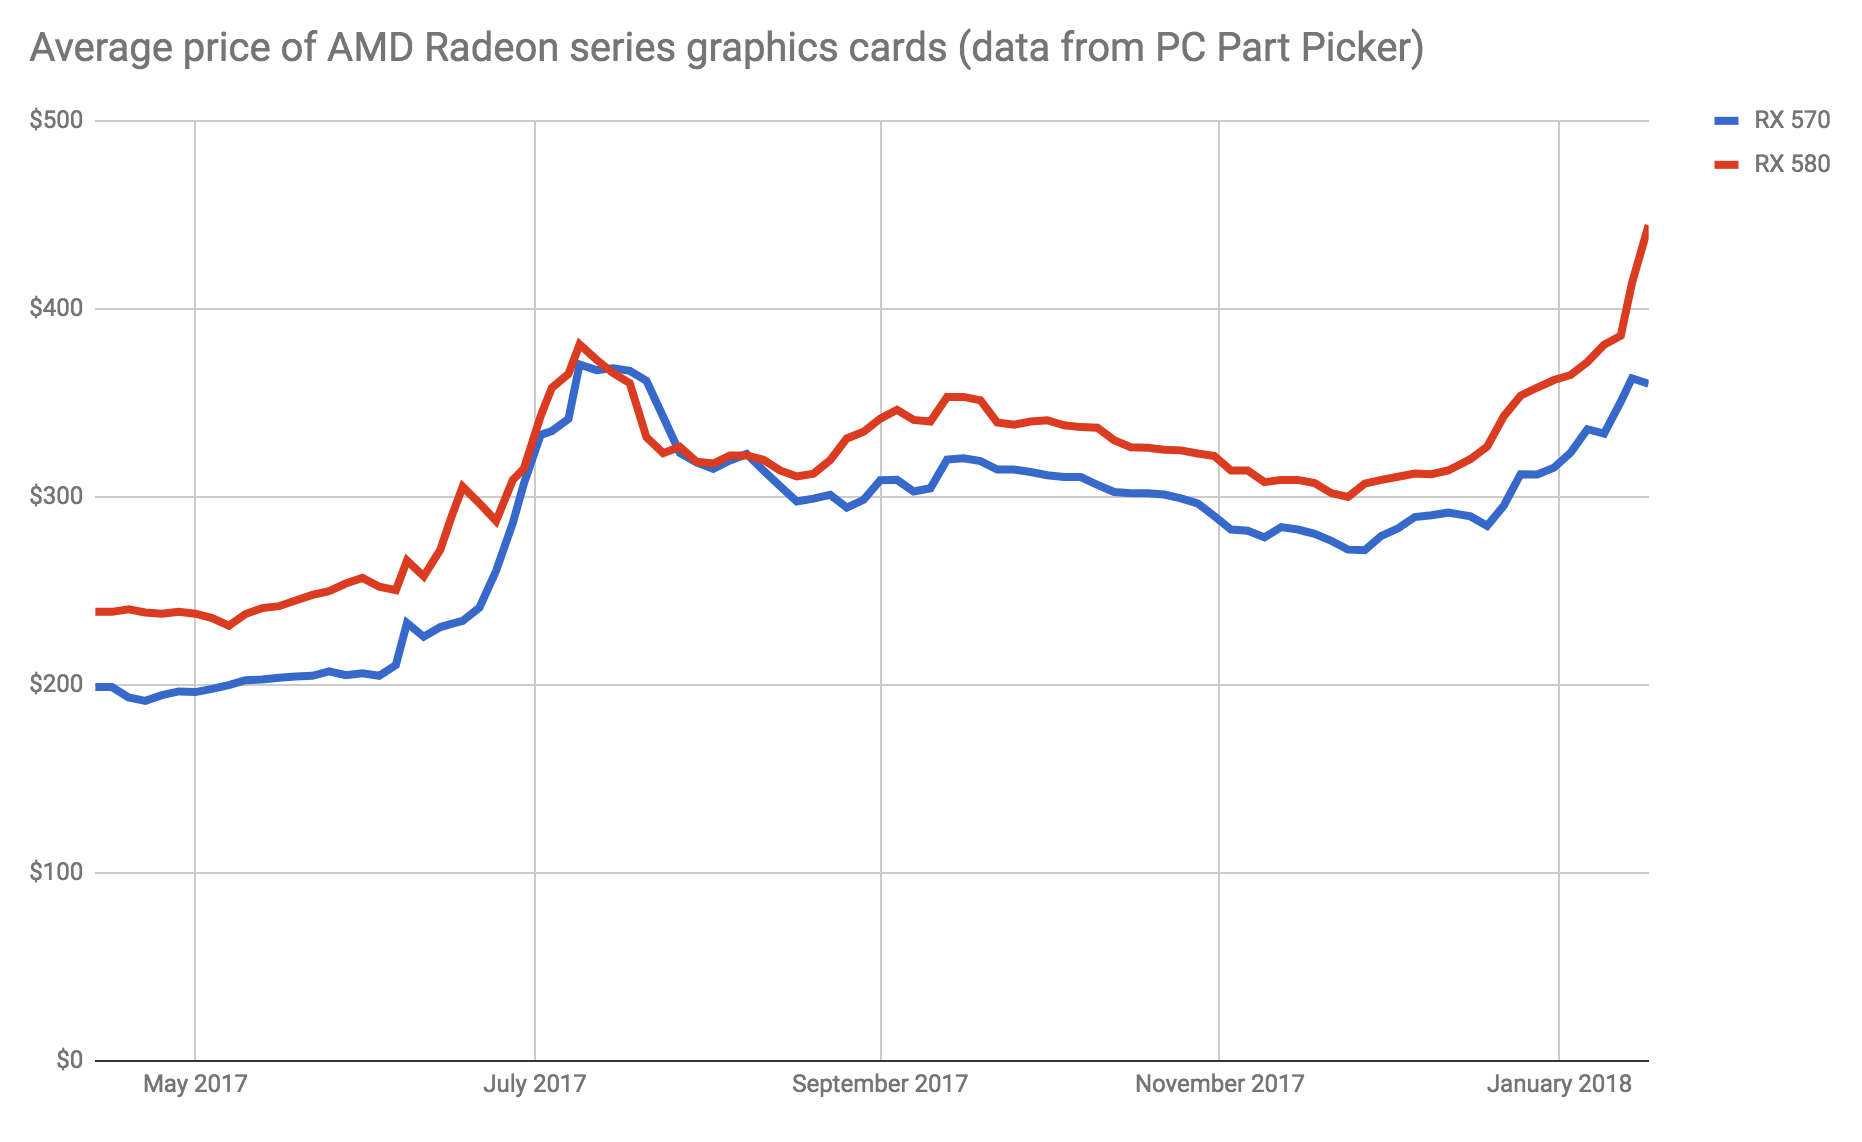 Data from PC Part Picker